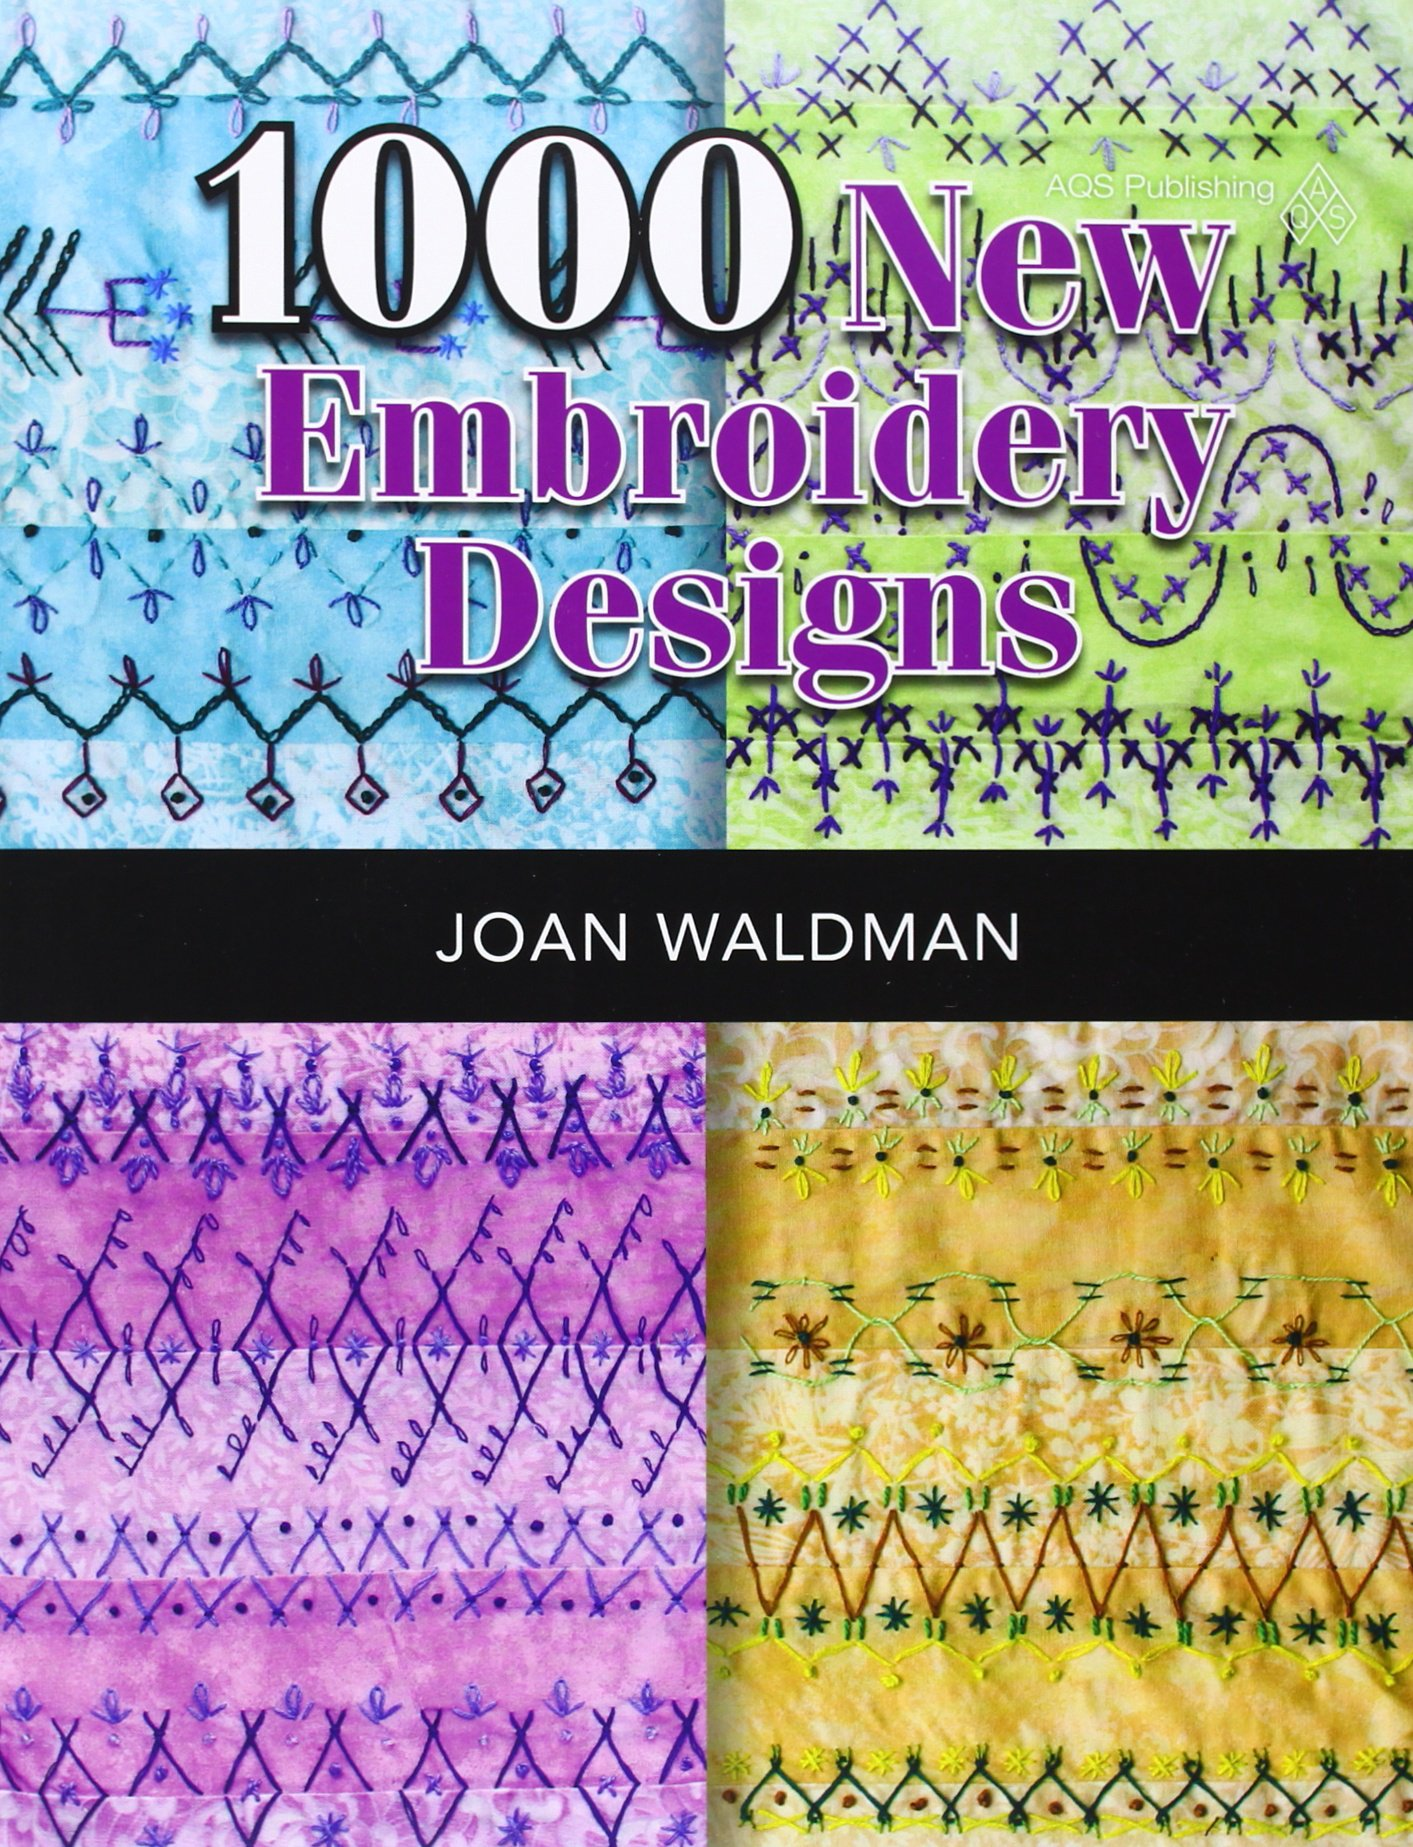 1000 New Embroidery Designs Joan Waldman 9781604601619 Amazon